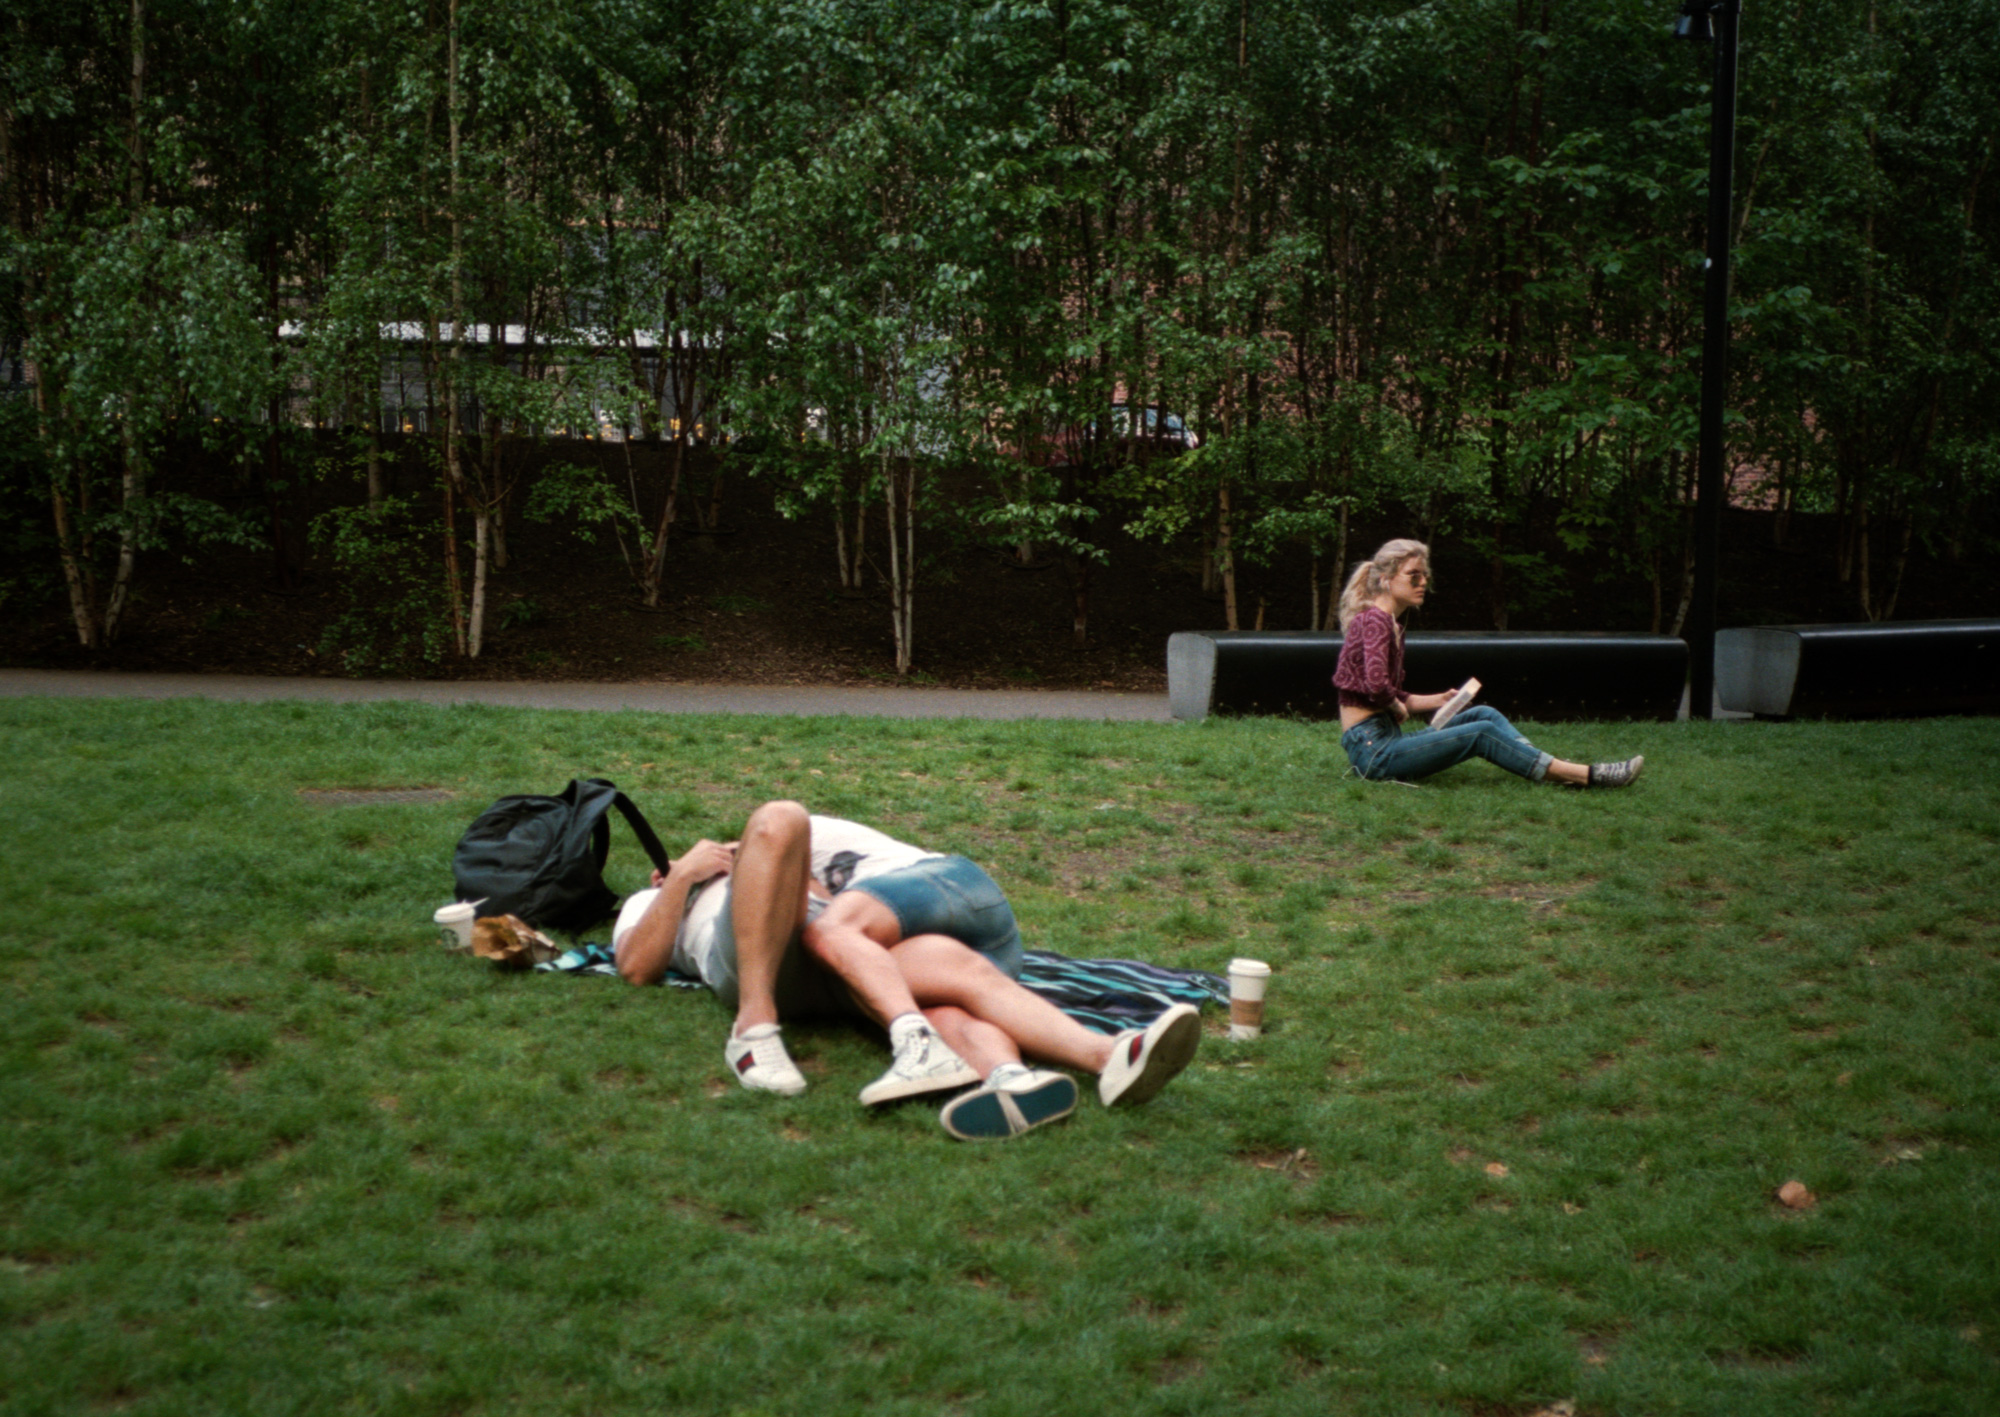 Single Couple, Gay Love, London, Observations Series, Photography By Ioannis Koussertari